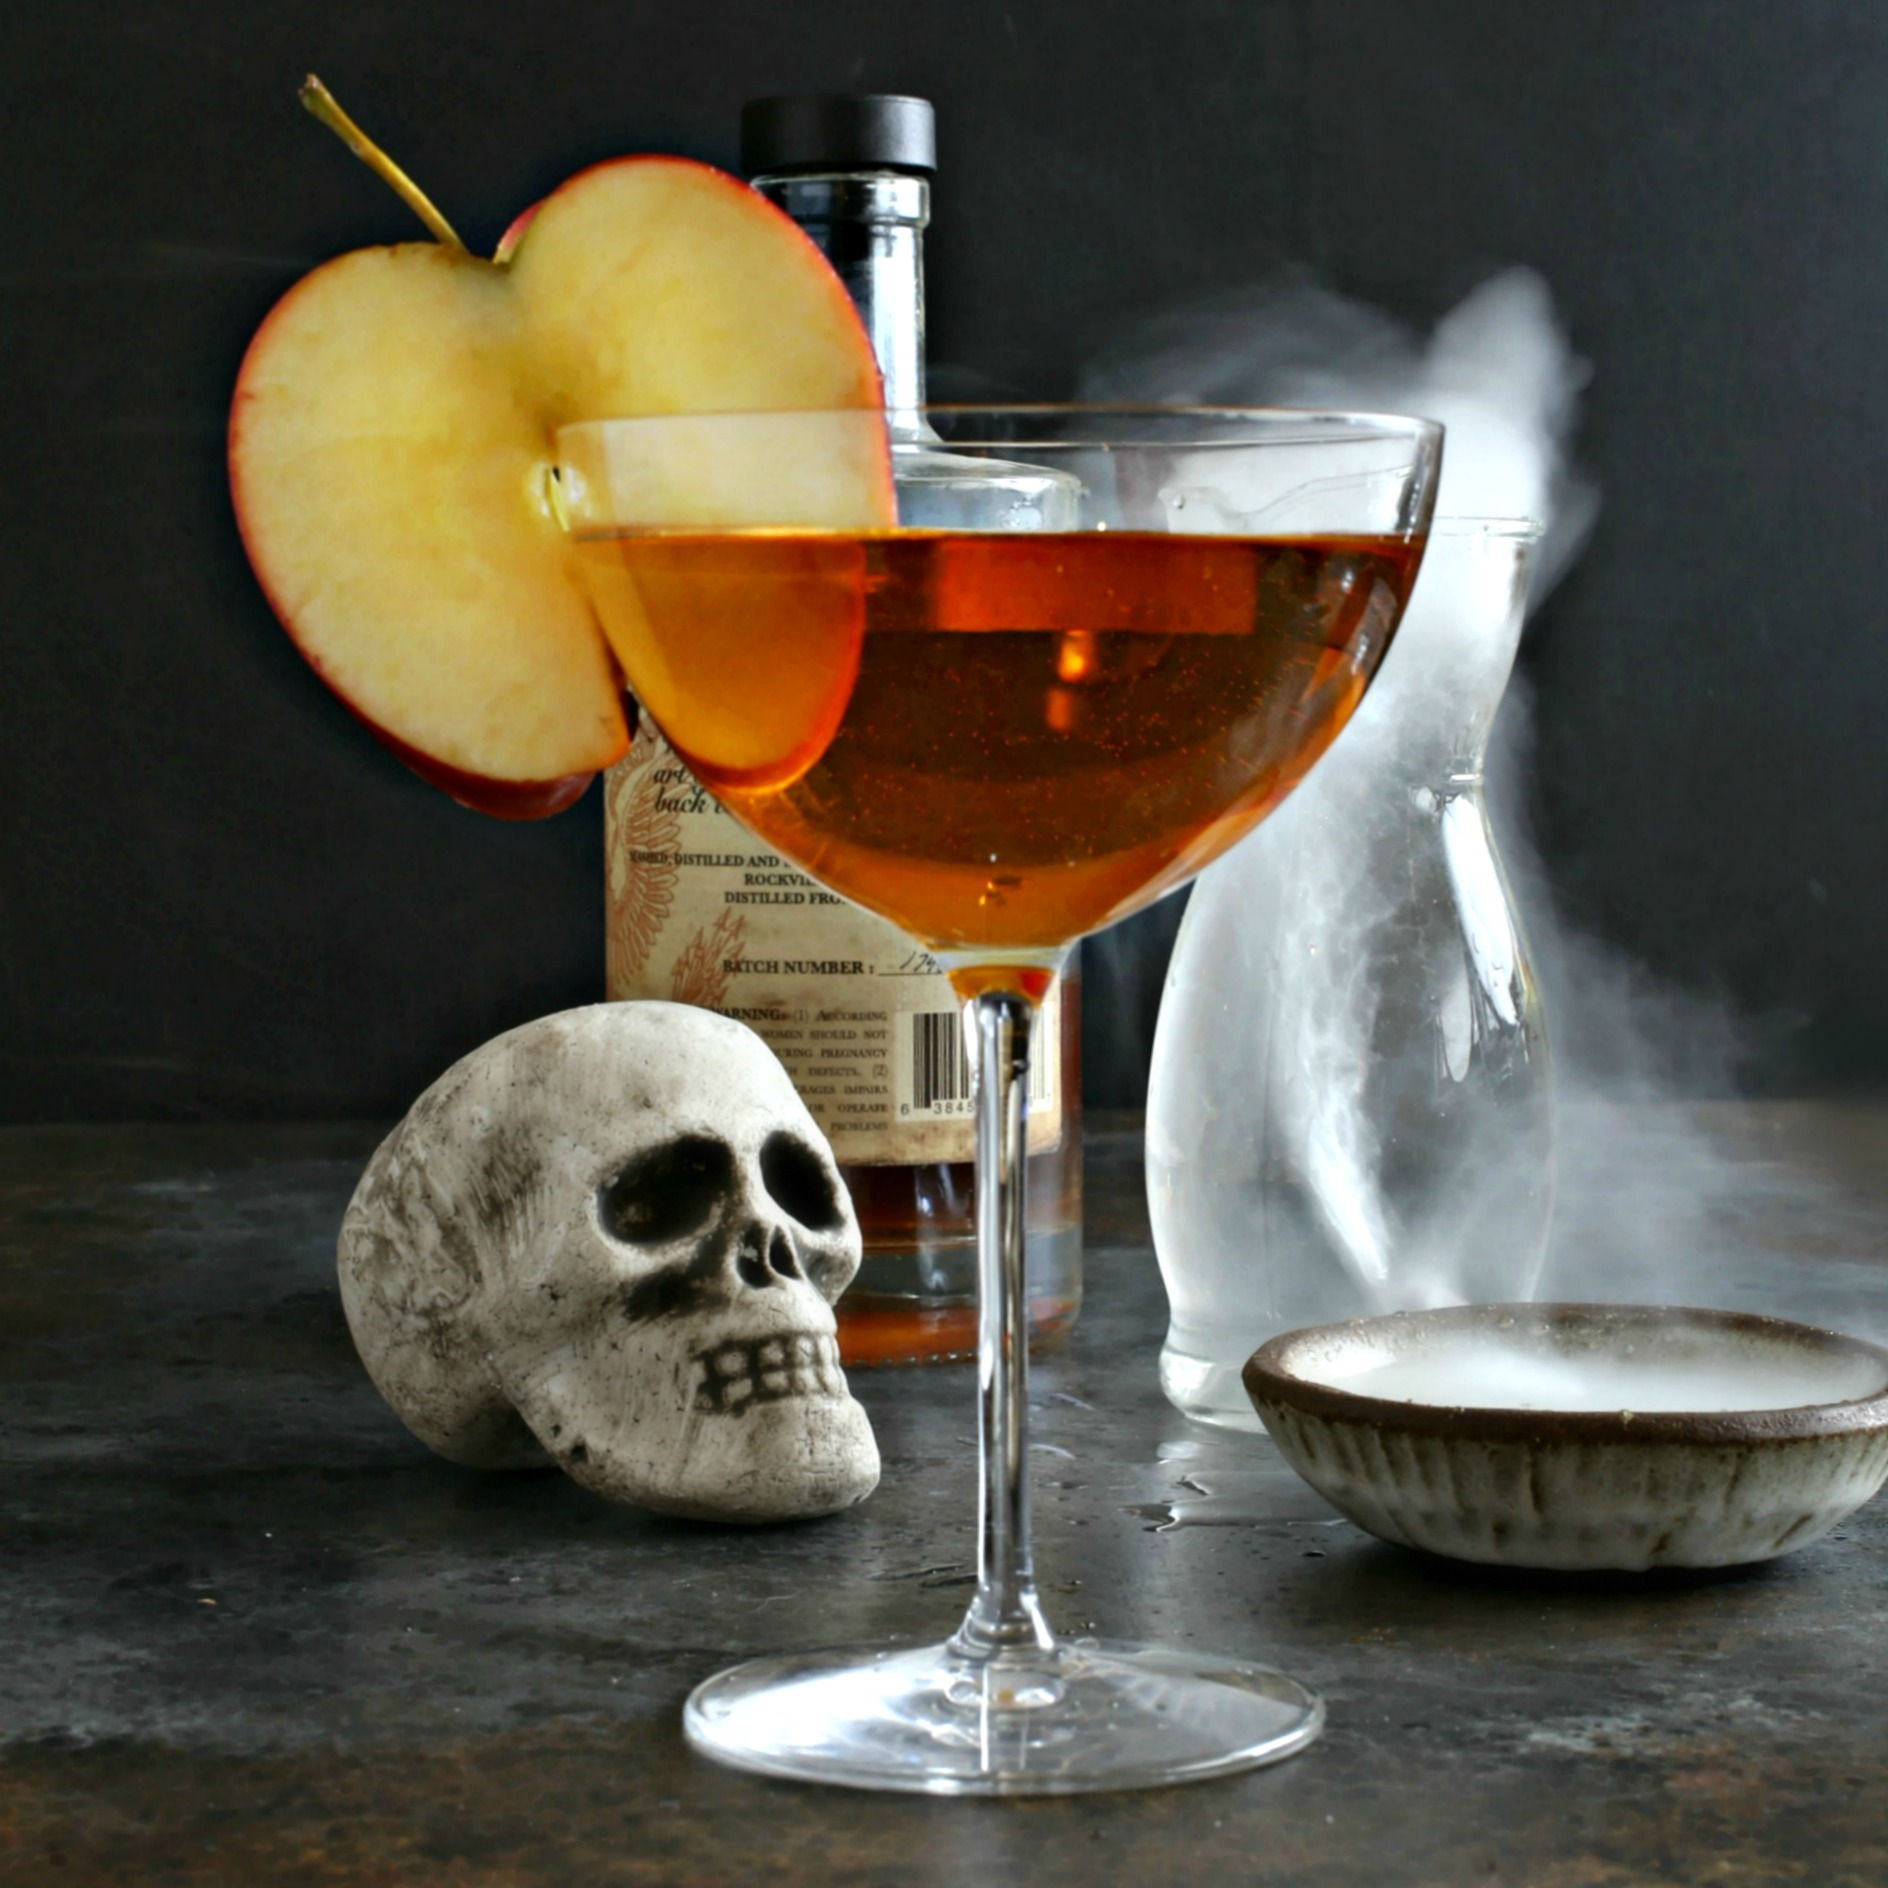 Recipe for a bourbon cocktail flavored with sweet vermouth, apple cider and Angostura bitters.